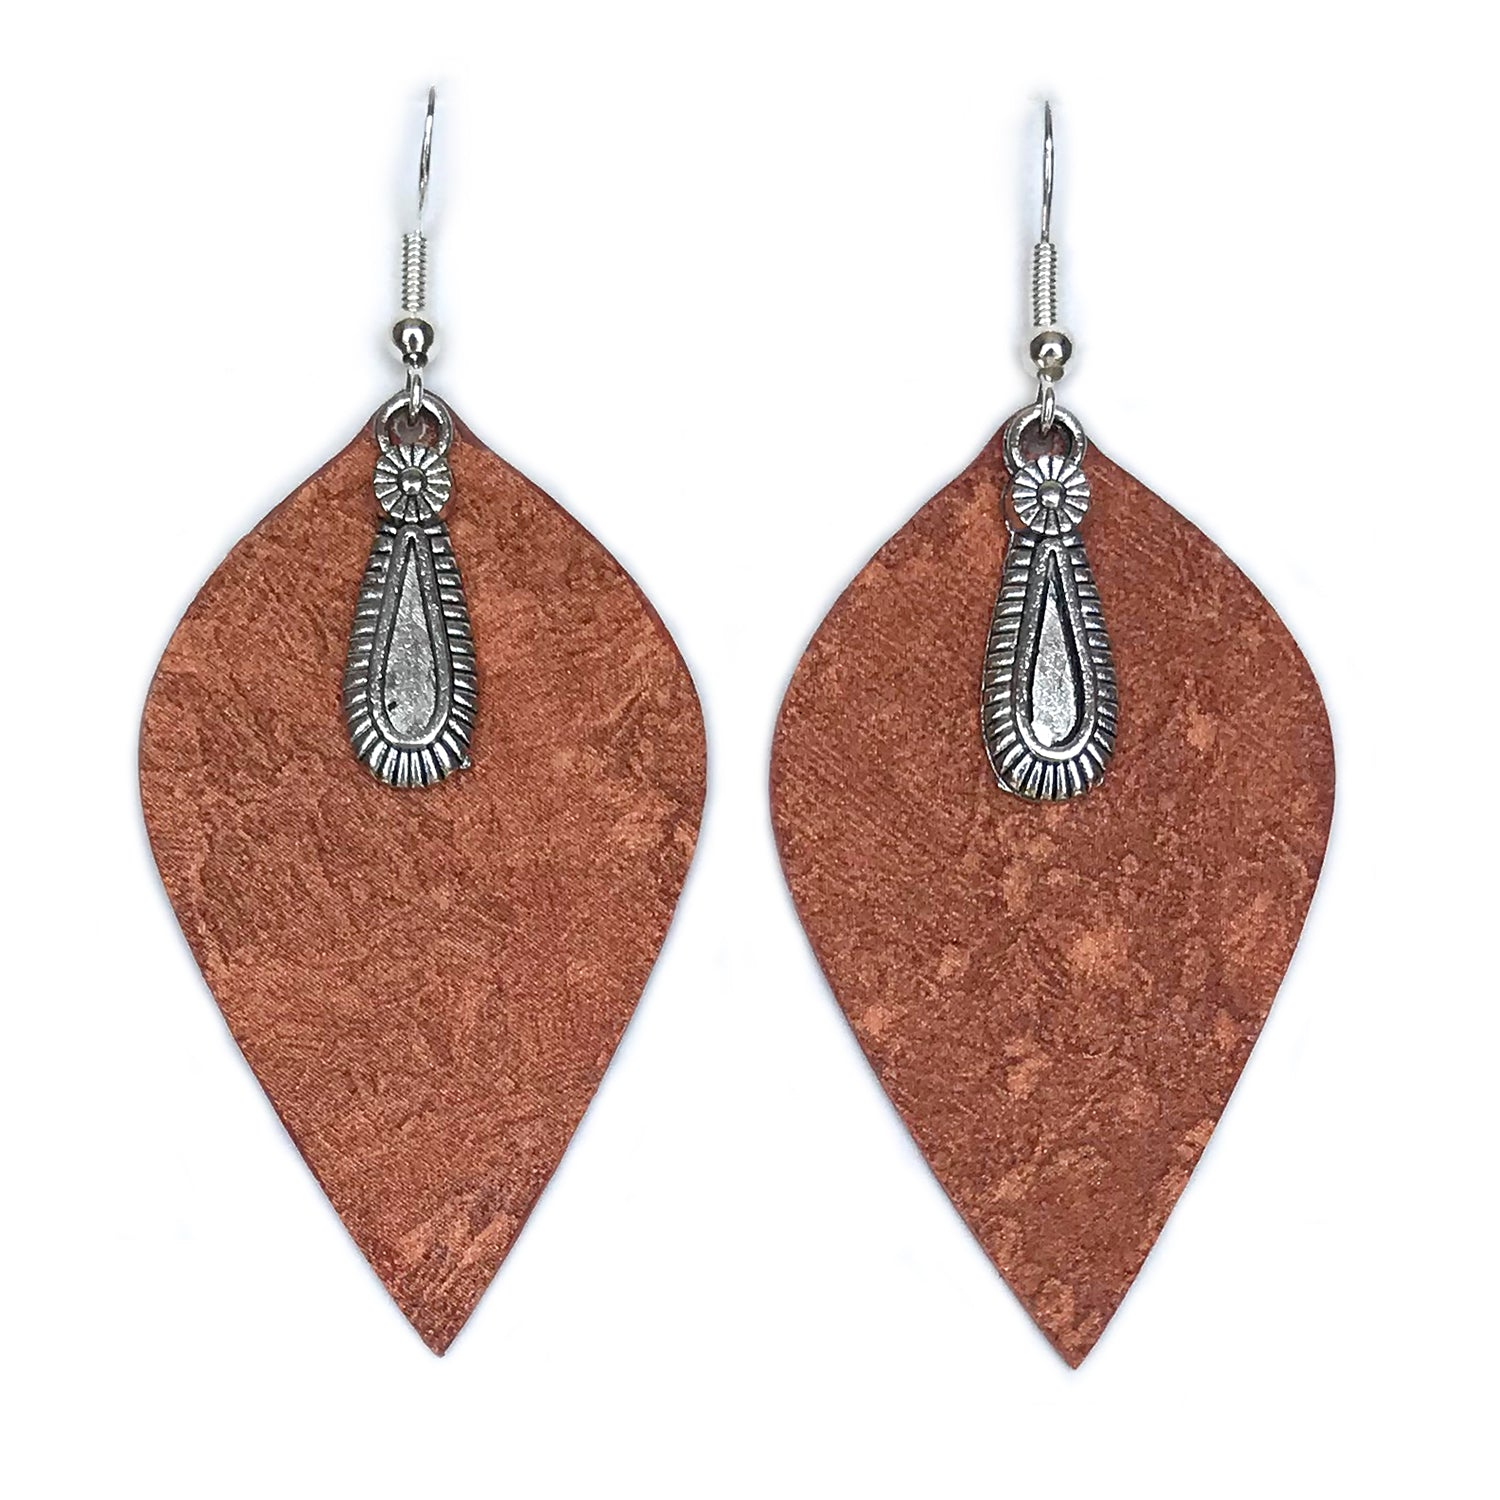 Gracie Nicole Large Leaf Earrings with Flower Teardrop Charm